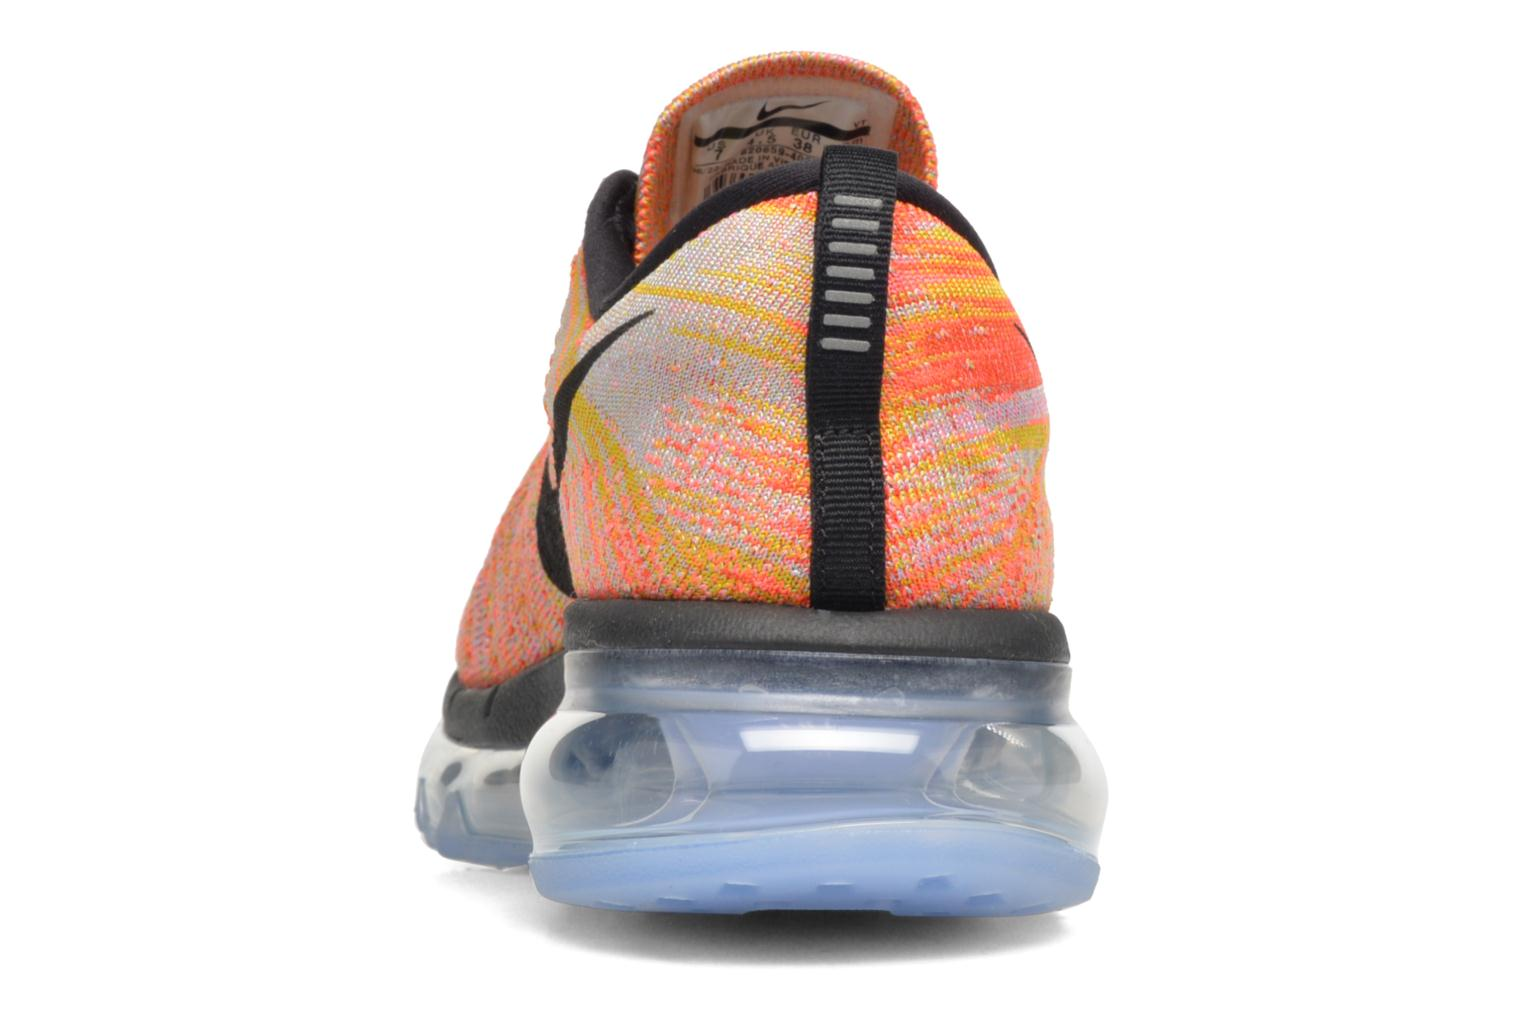 Wmns Nike Flyknit Max Aluminum/Black-Hot Punch-Electrolime